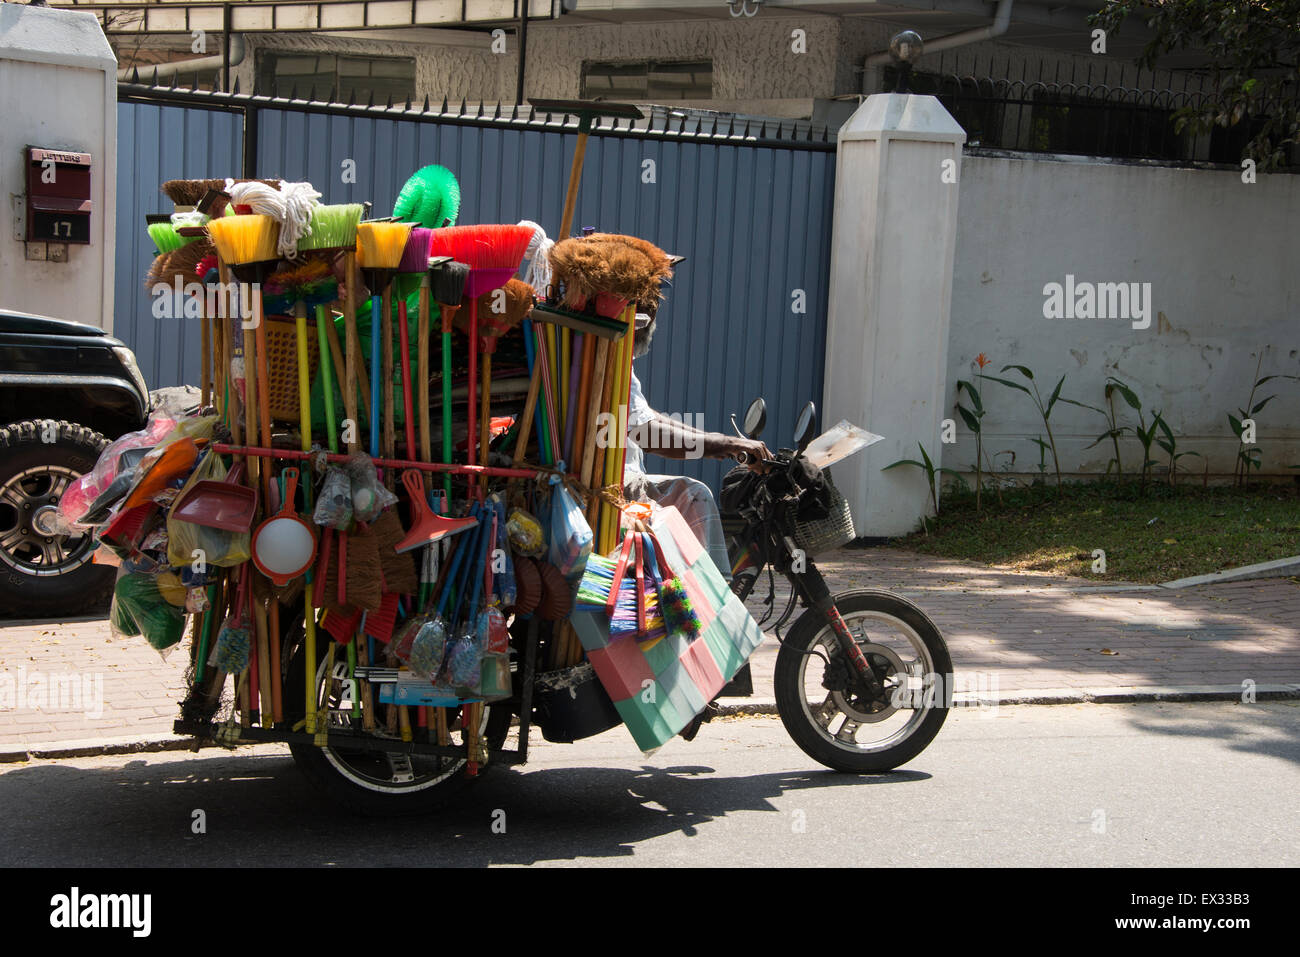 VOYAGE - Futur nomade à deux roues - Page 2 A-hawker-on-his-motorcycle-carrying-a-load-of-household-brooms-in-EX33B3